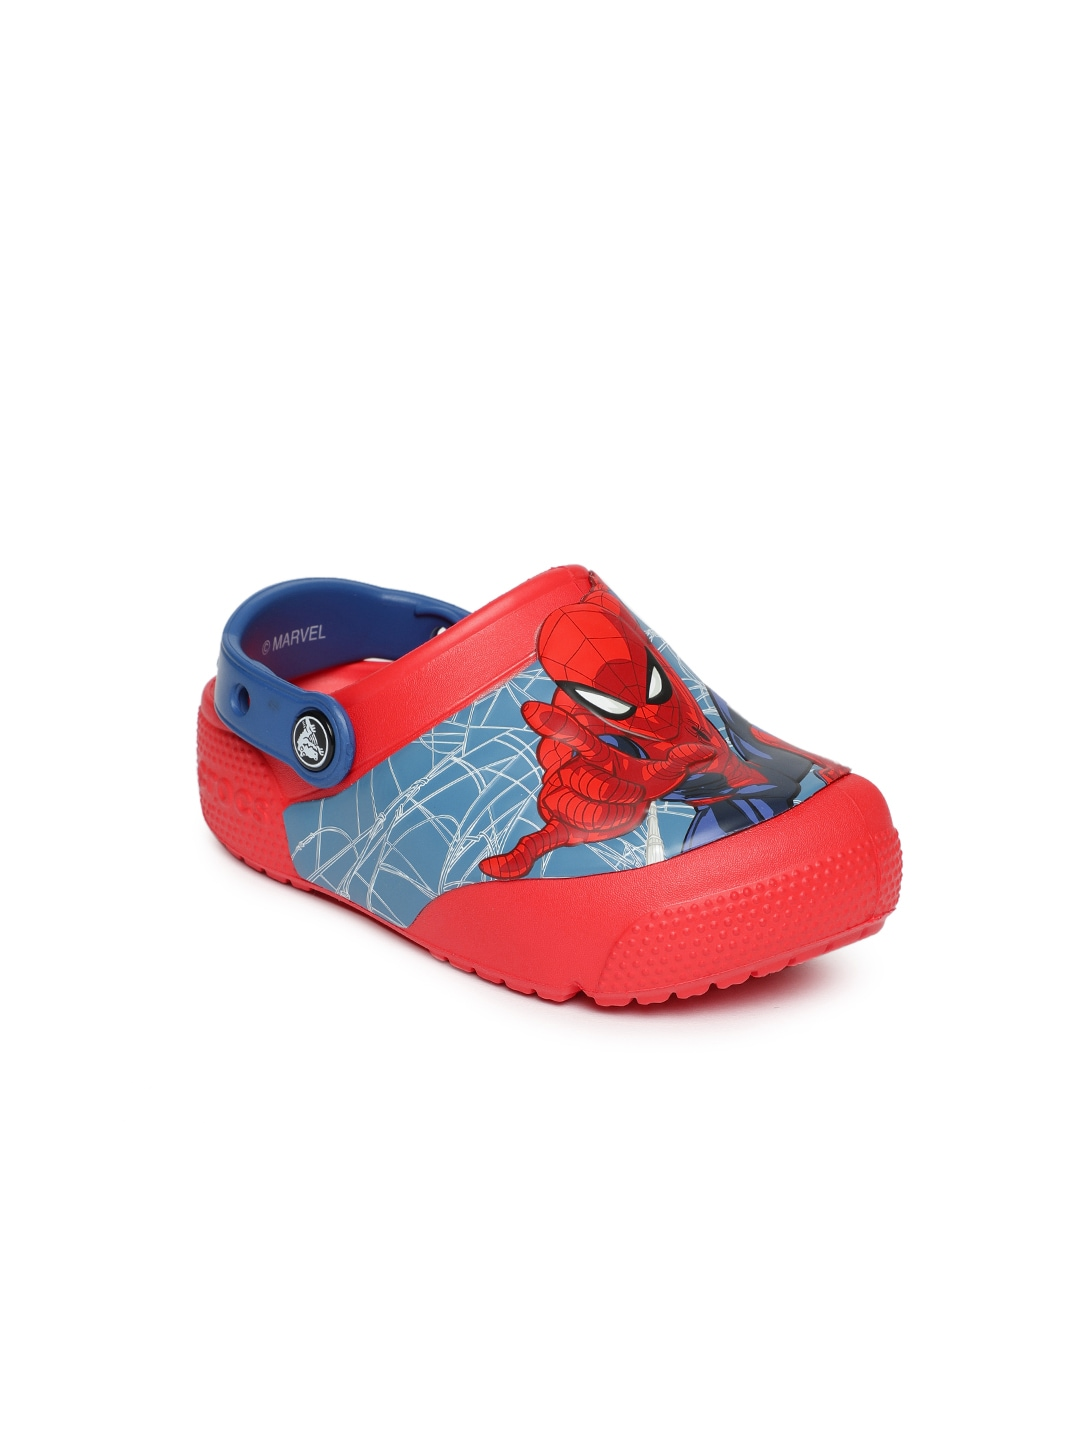 80d7af753830e Boys Girls Crocs - Buy Boys Girls Crocs online in India